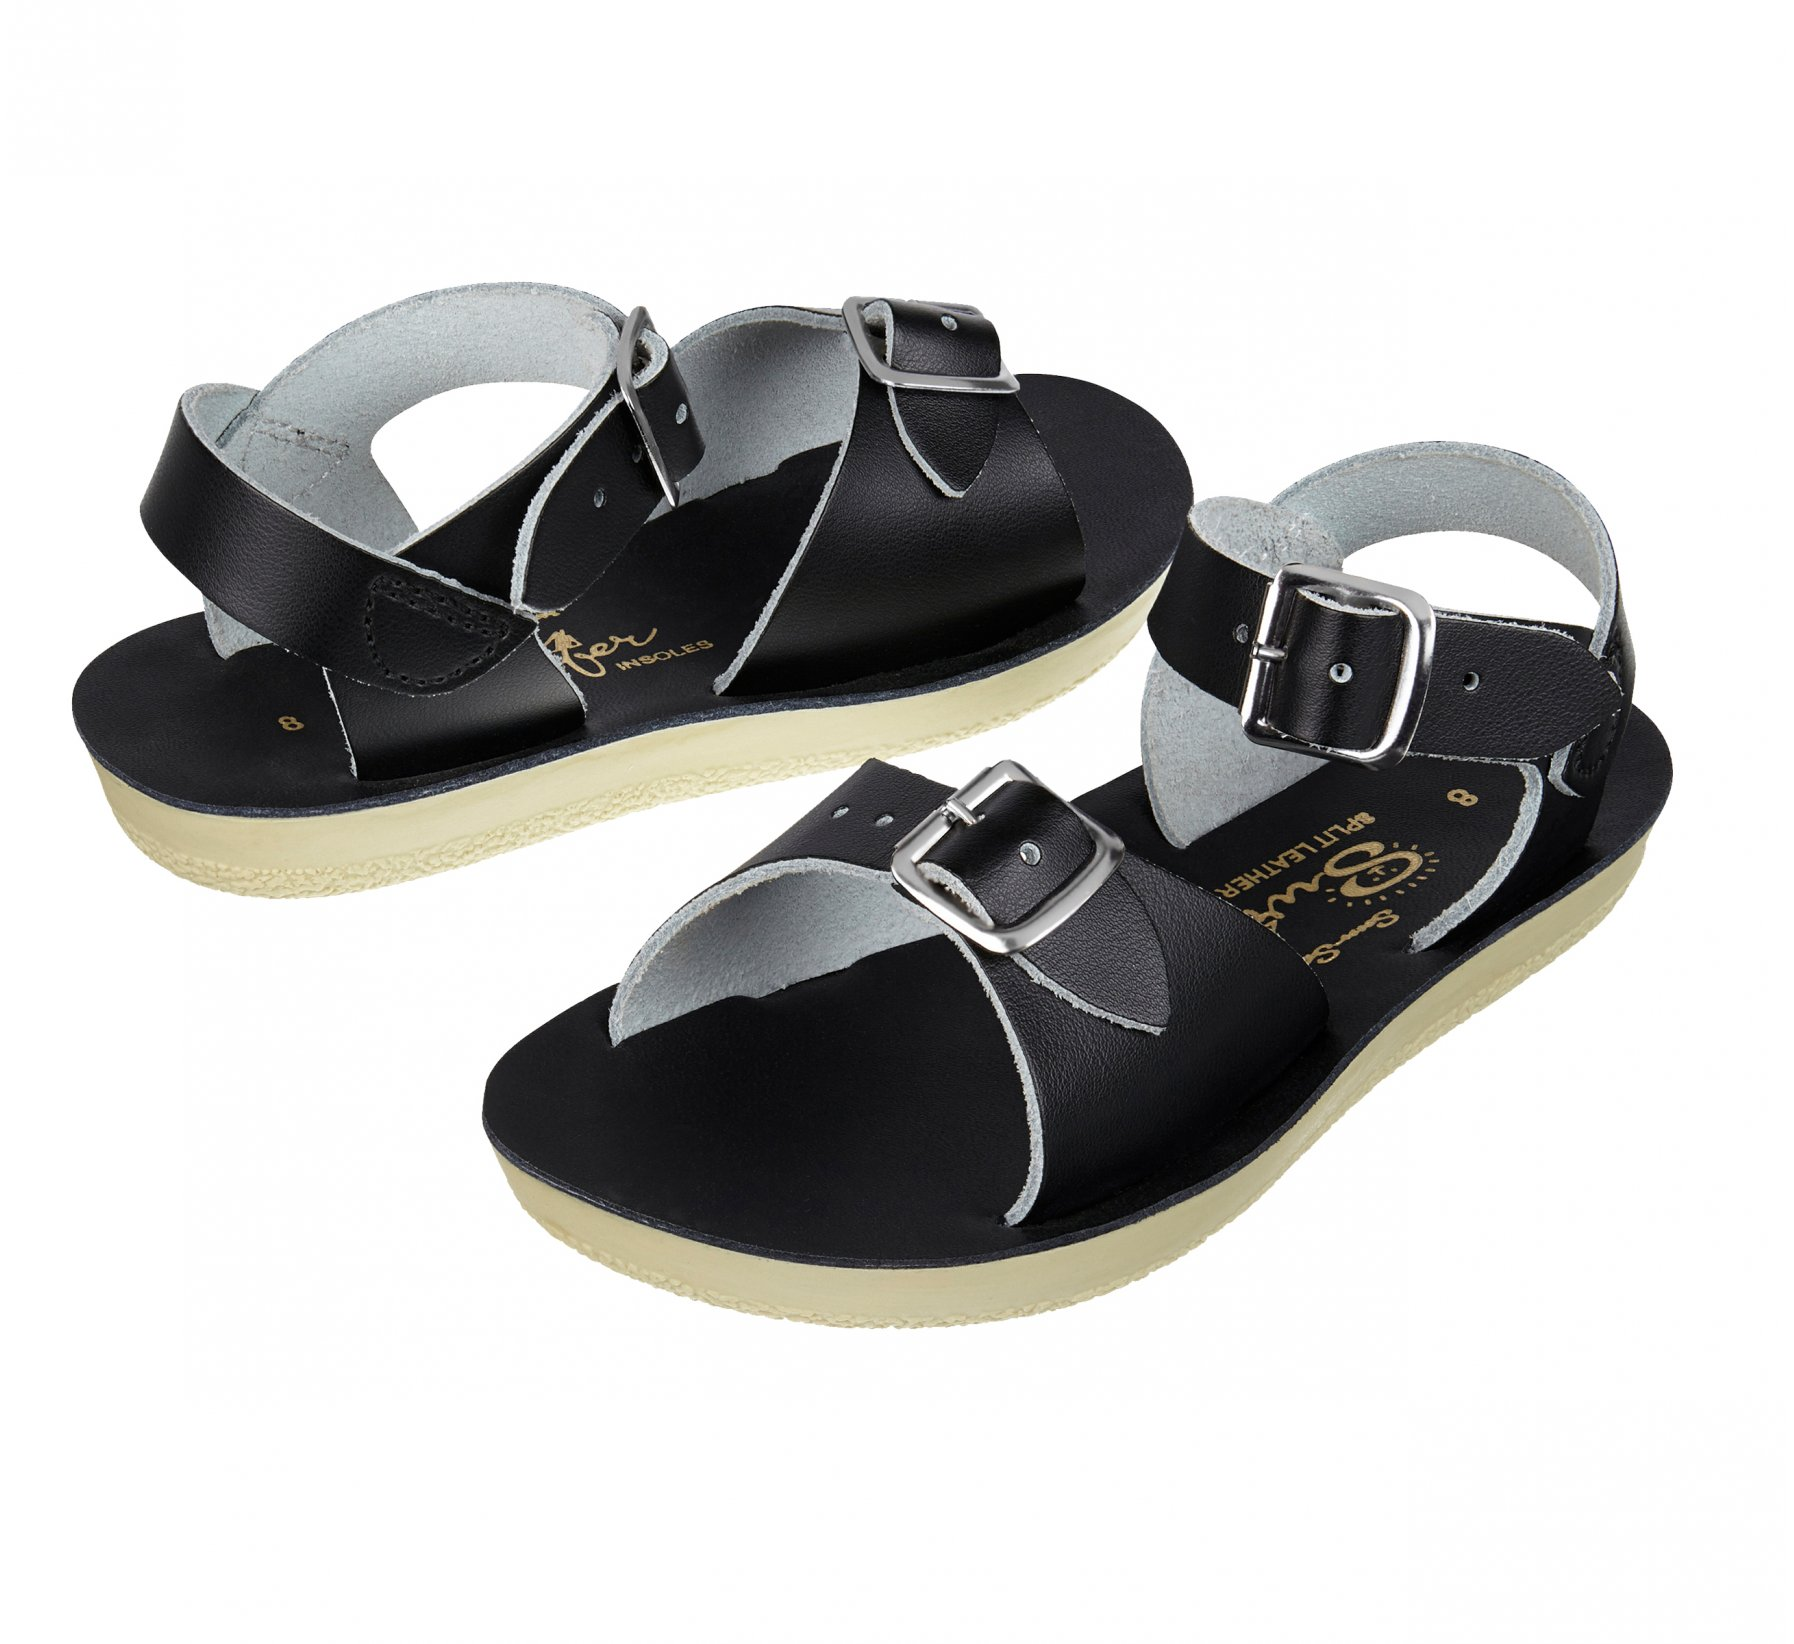 Surfer Black - Salt Water Sandals